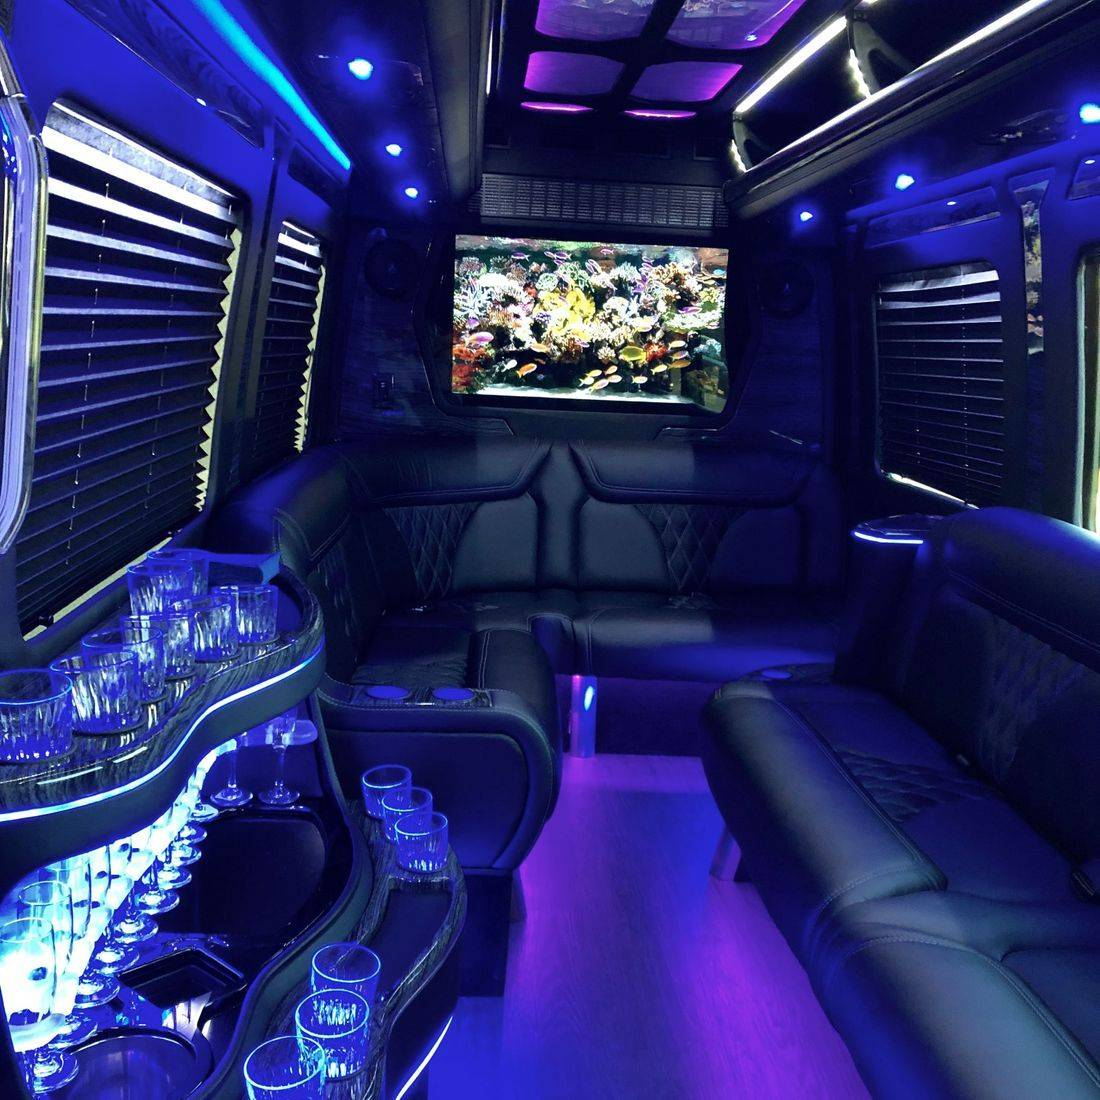 The inside of a limousine